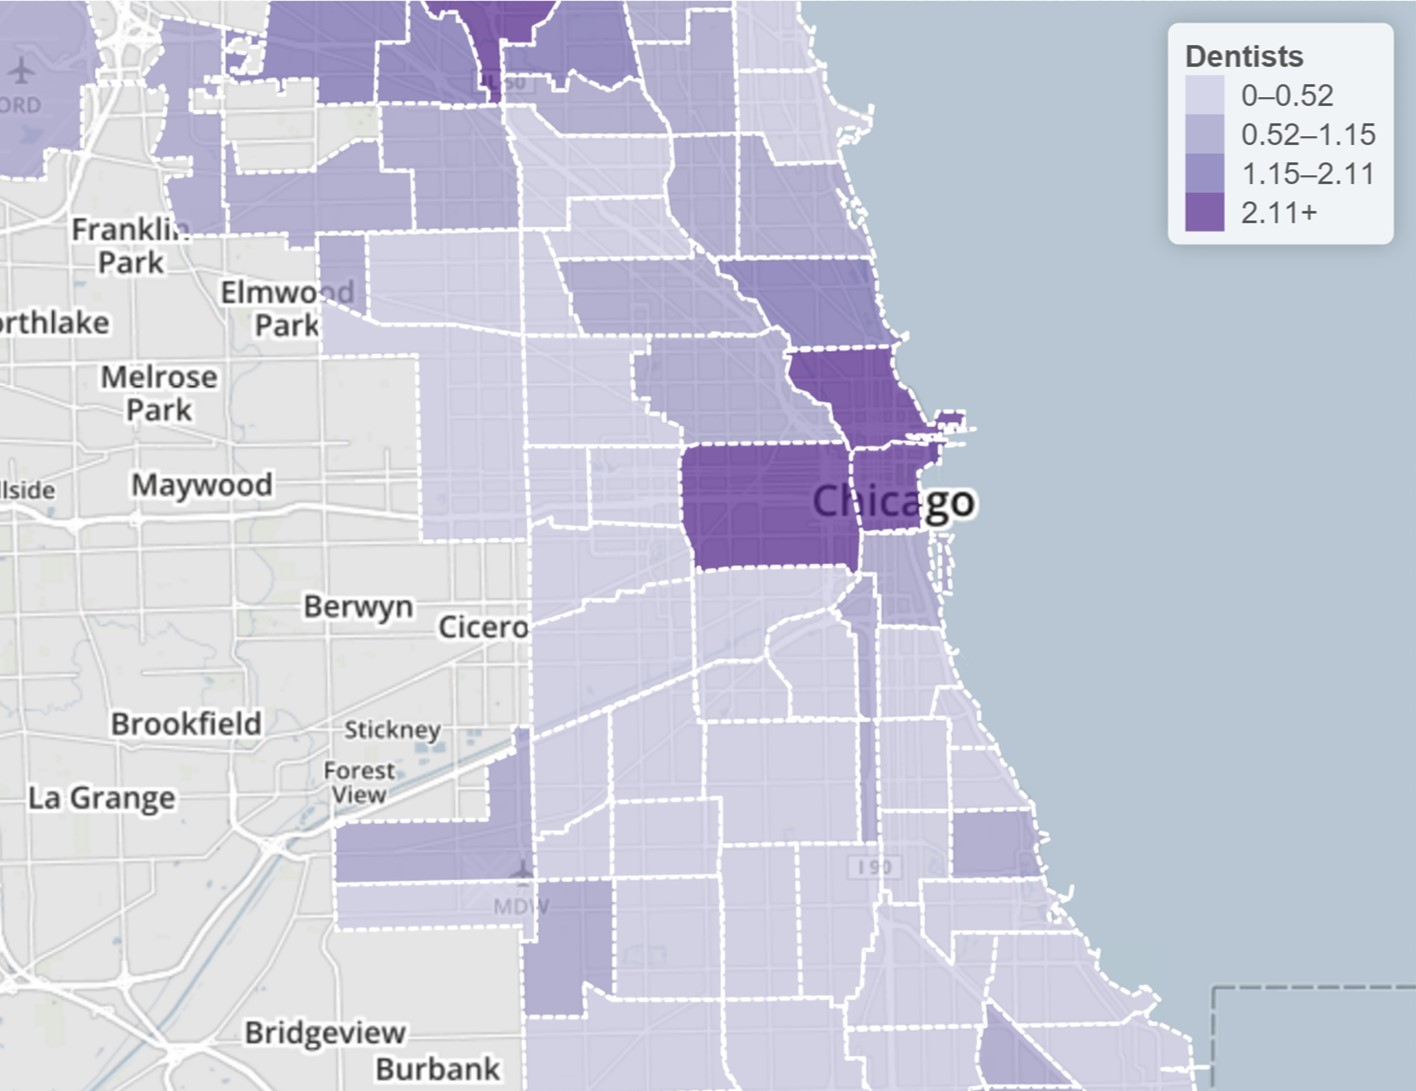 Practicing dentists per 1,000 residents by Chicago community area in 2010 - Courtesy of Chicago Health Atlas